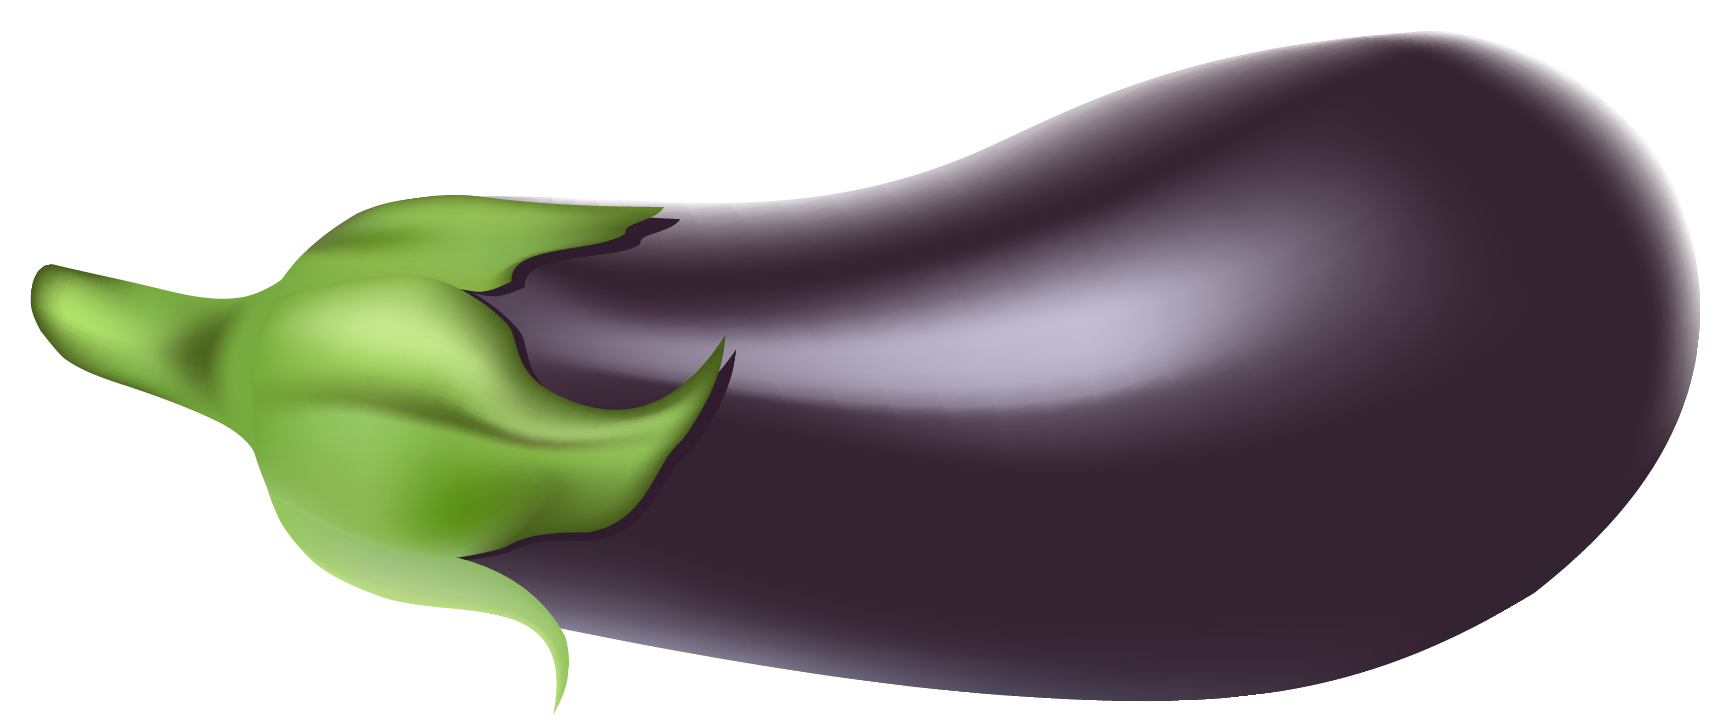 Eggplant clipart transparent background. Png picture gallery yopriceville